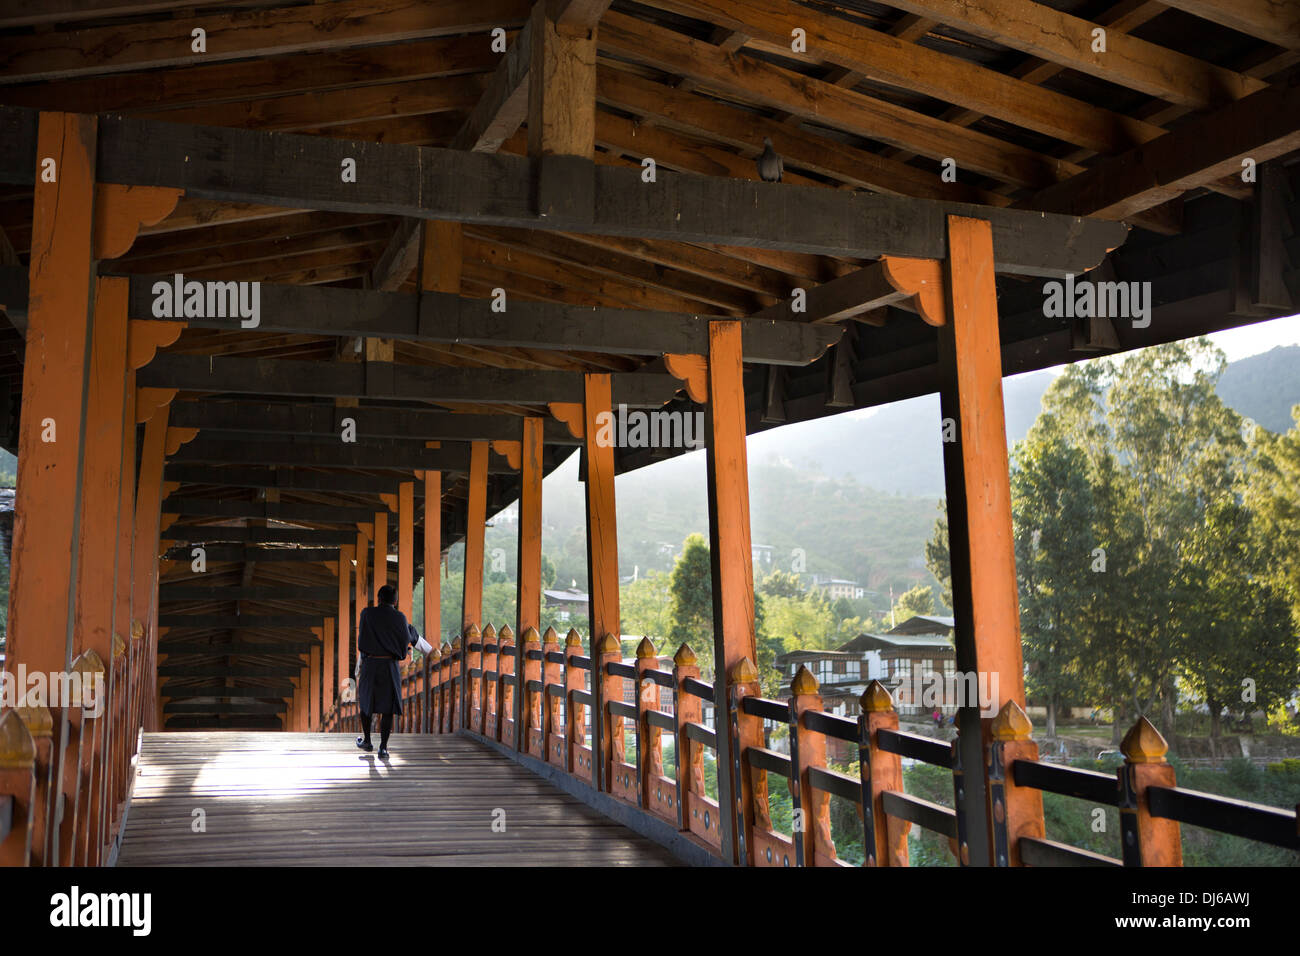 Bhutan, Punakha Dzong, man crossing bridge over Mo Chhu River - Stock Image